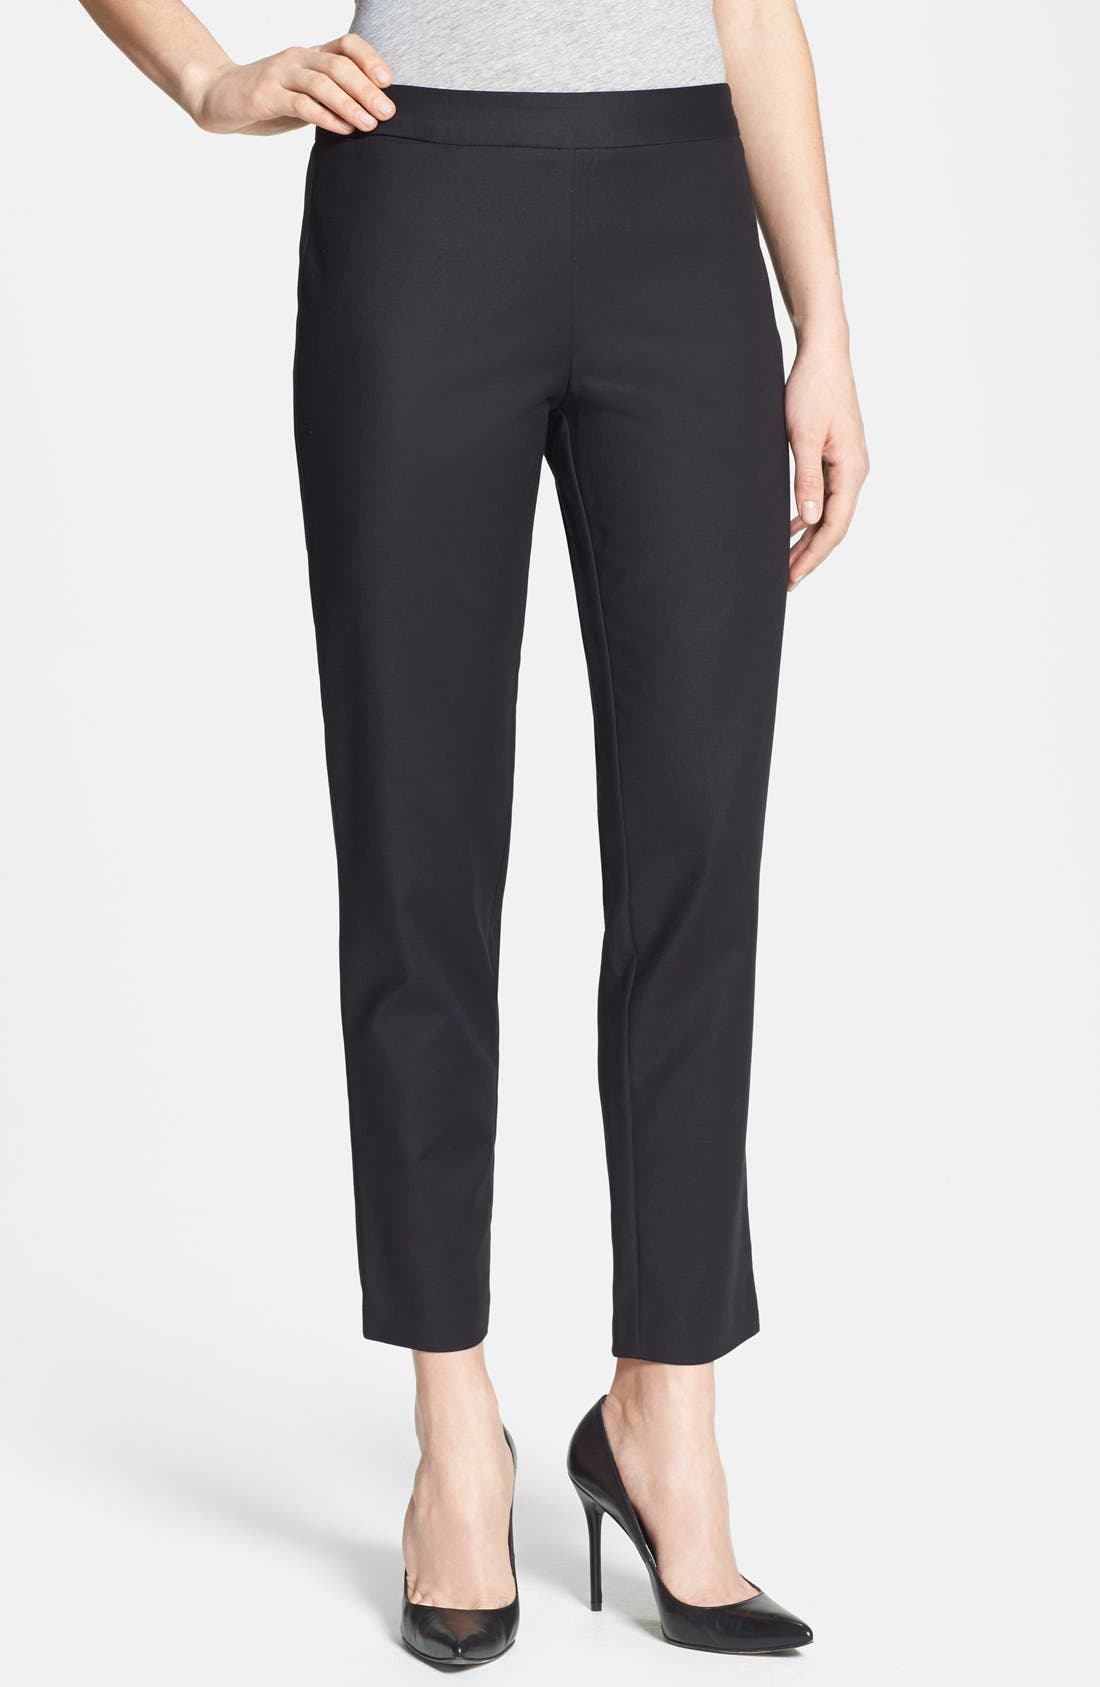 Main Image - Kenneth Cole New York 'Khloee' Ankle Pants (Petite)